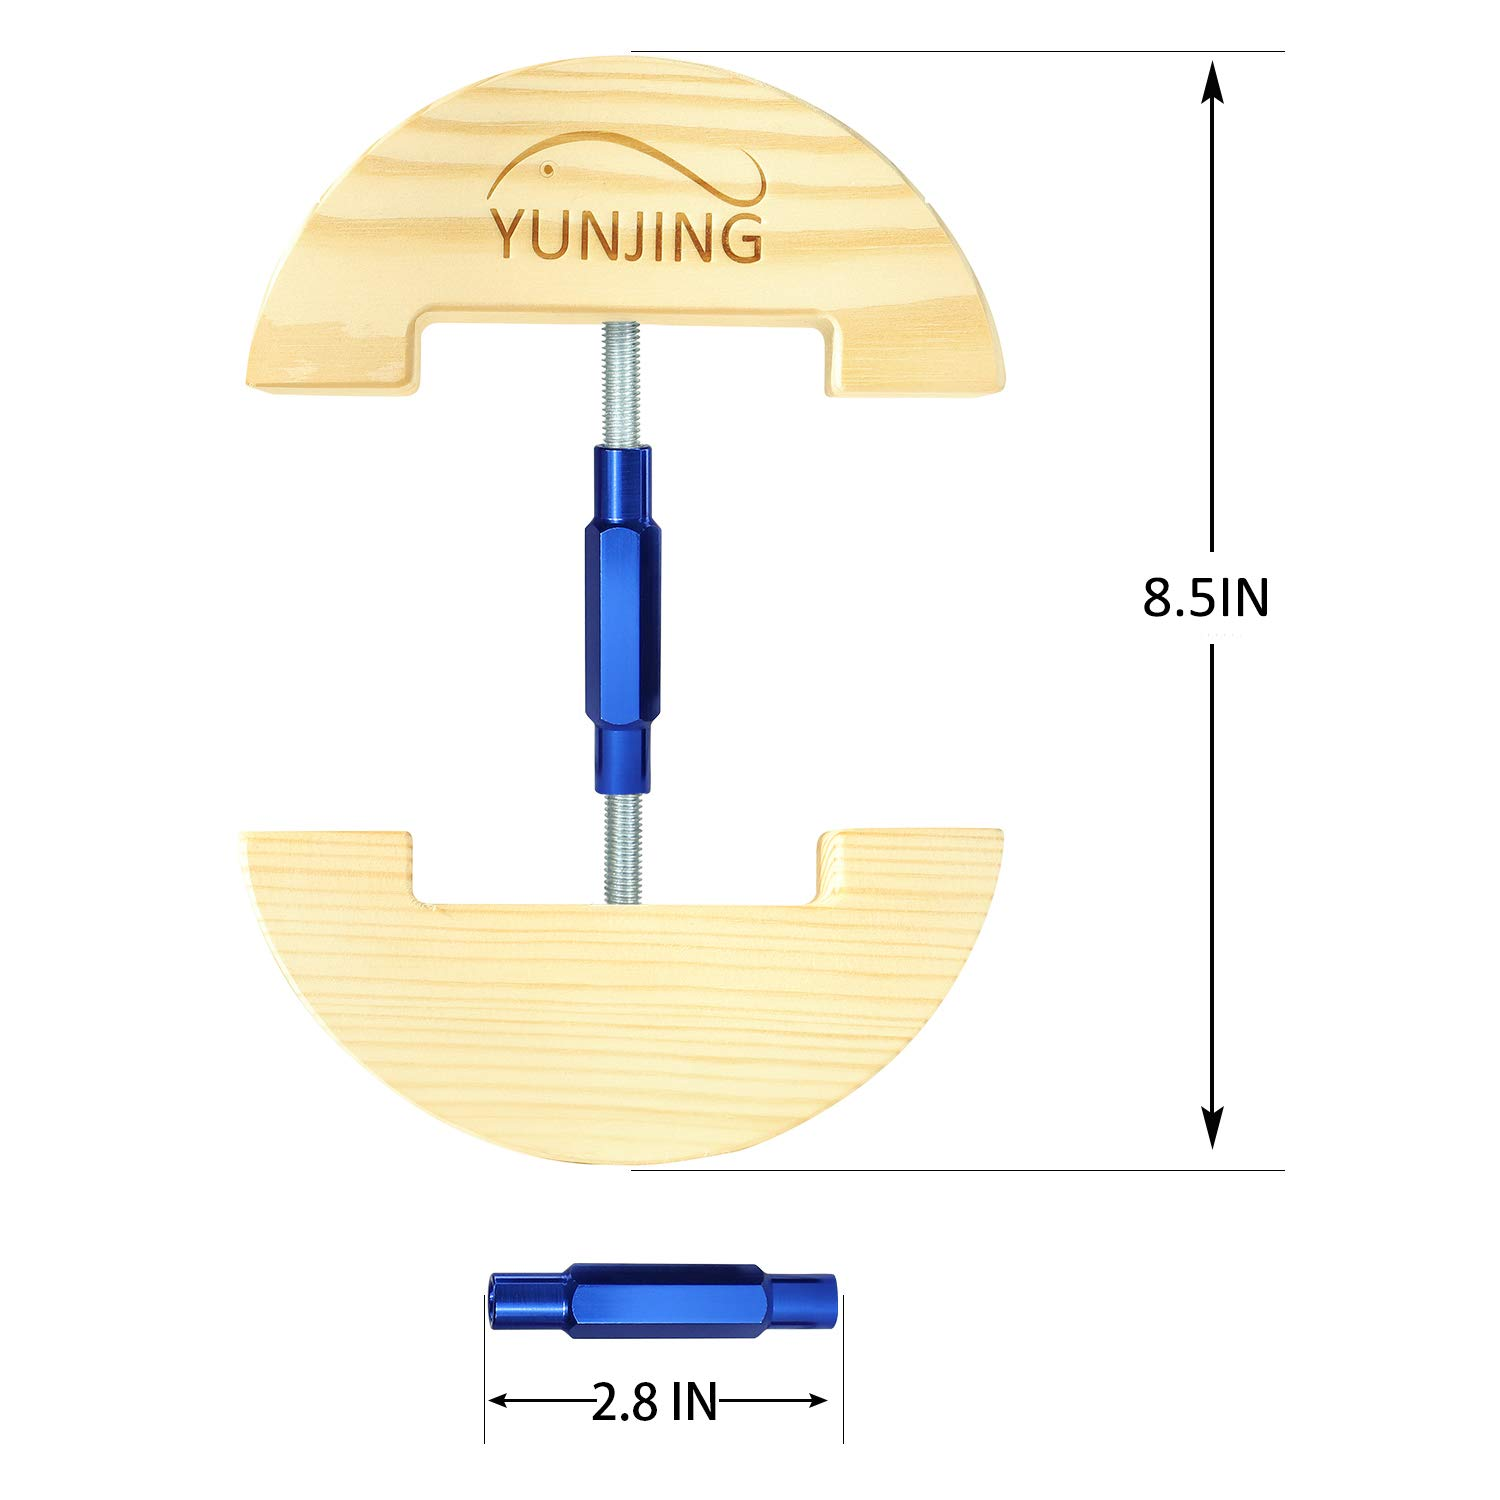 YUNJING Hat Stretcher, One Size Adjustable to All hat Sizes from 6-1/2 to 8-1/2, Three Color, Simple & Easy to Use-Heavy Duty (Blue)